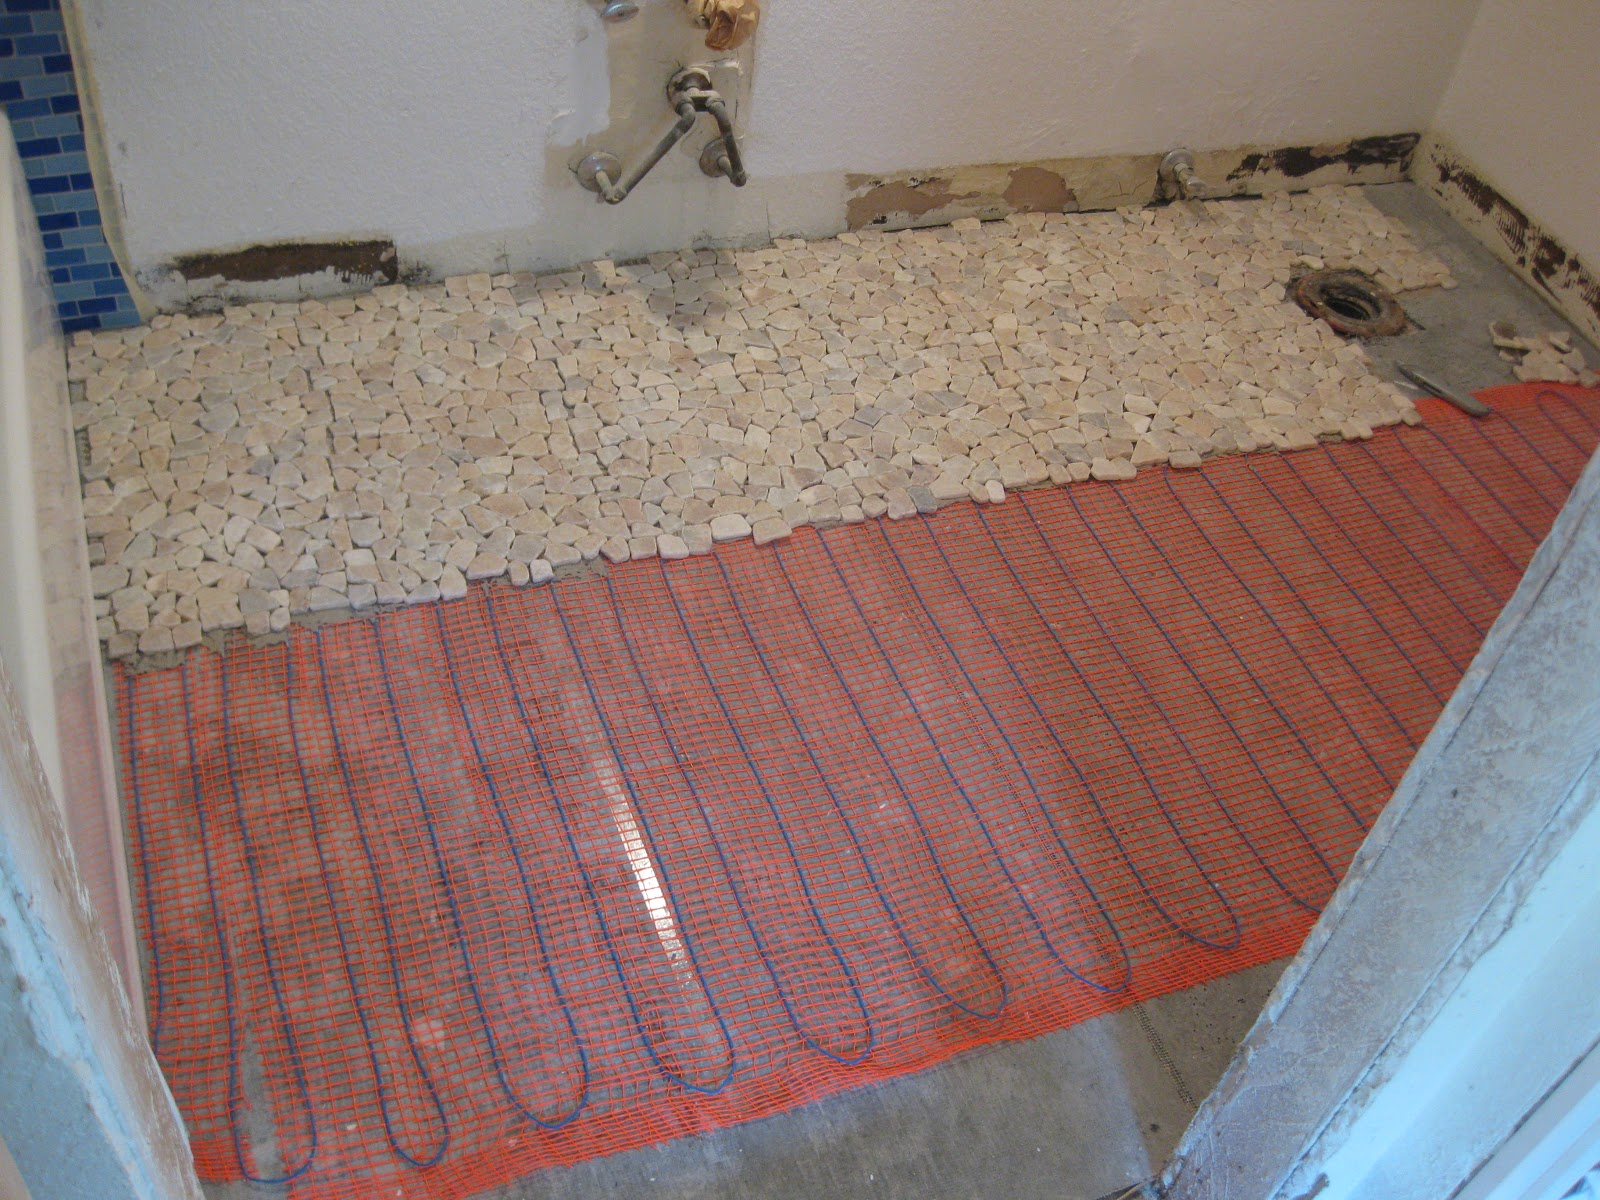 Innovative Flooring: Heated Stone Bathroom Floor